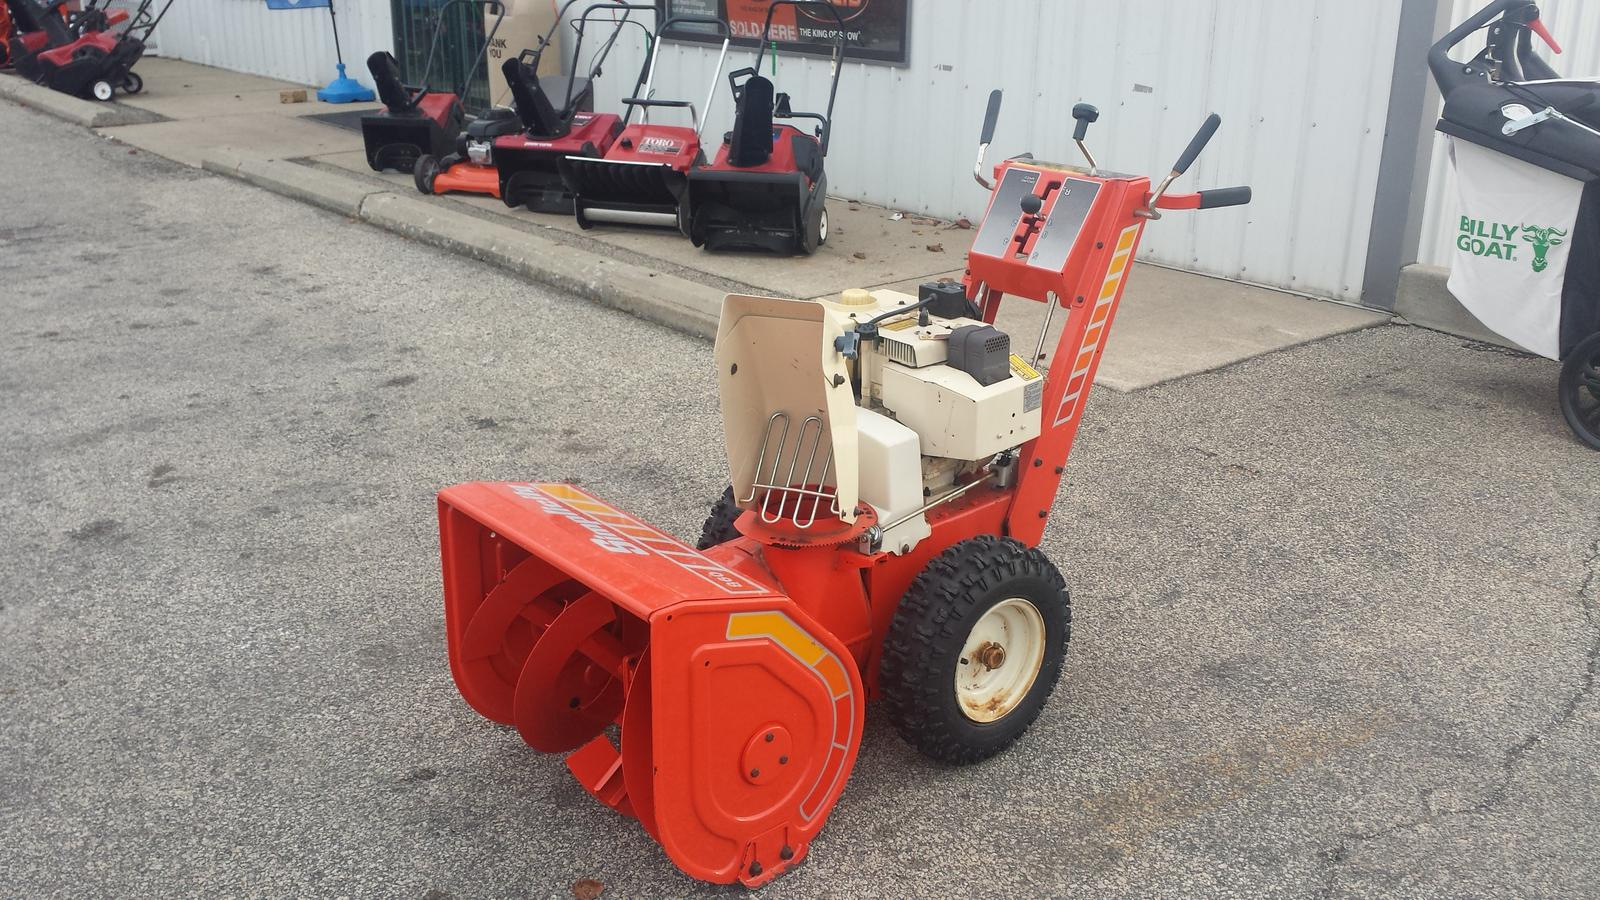 $500, Simplicity Simplicity 2 Stage Snow Blower